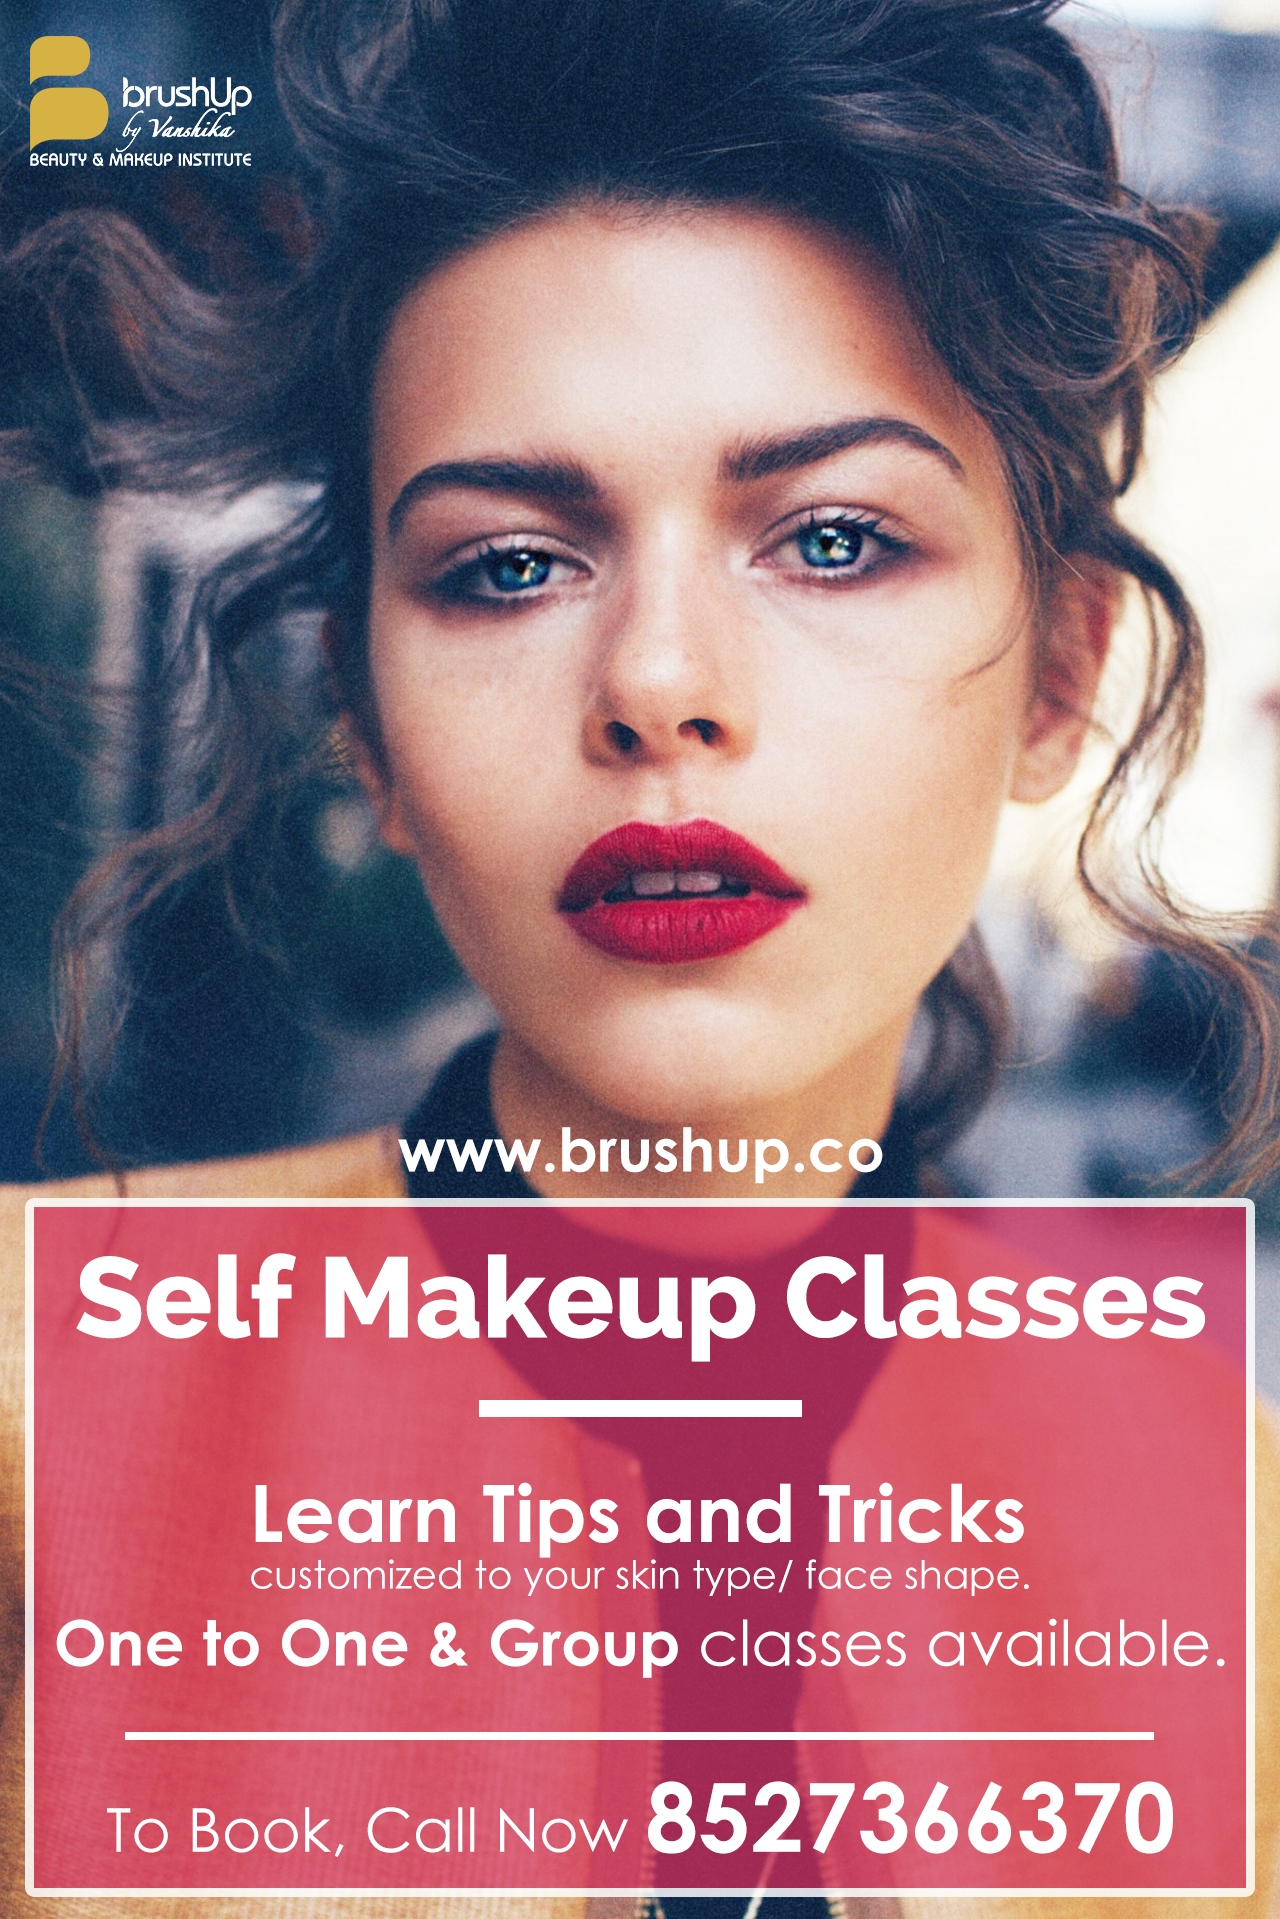 Professional Makeup Classes in Gurgaon Vanshika chawla